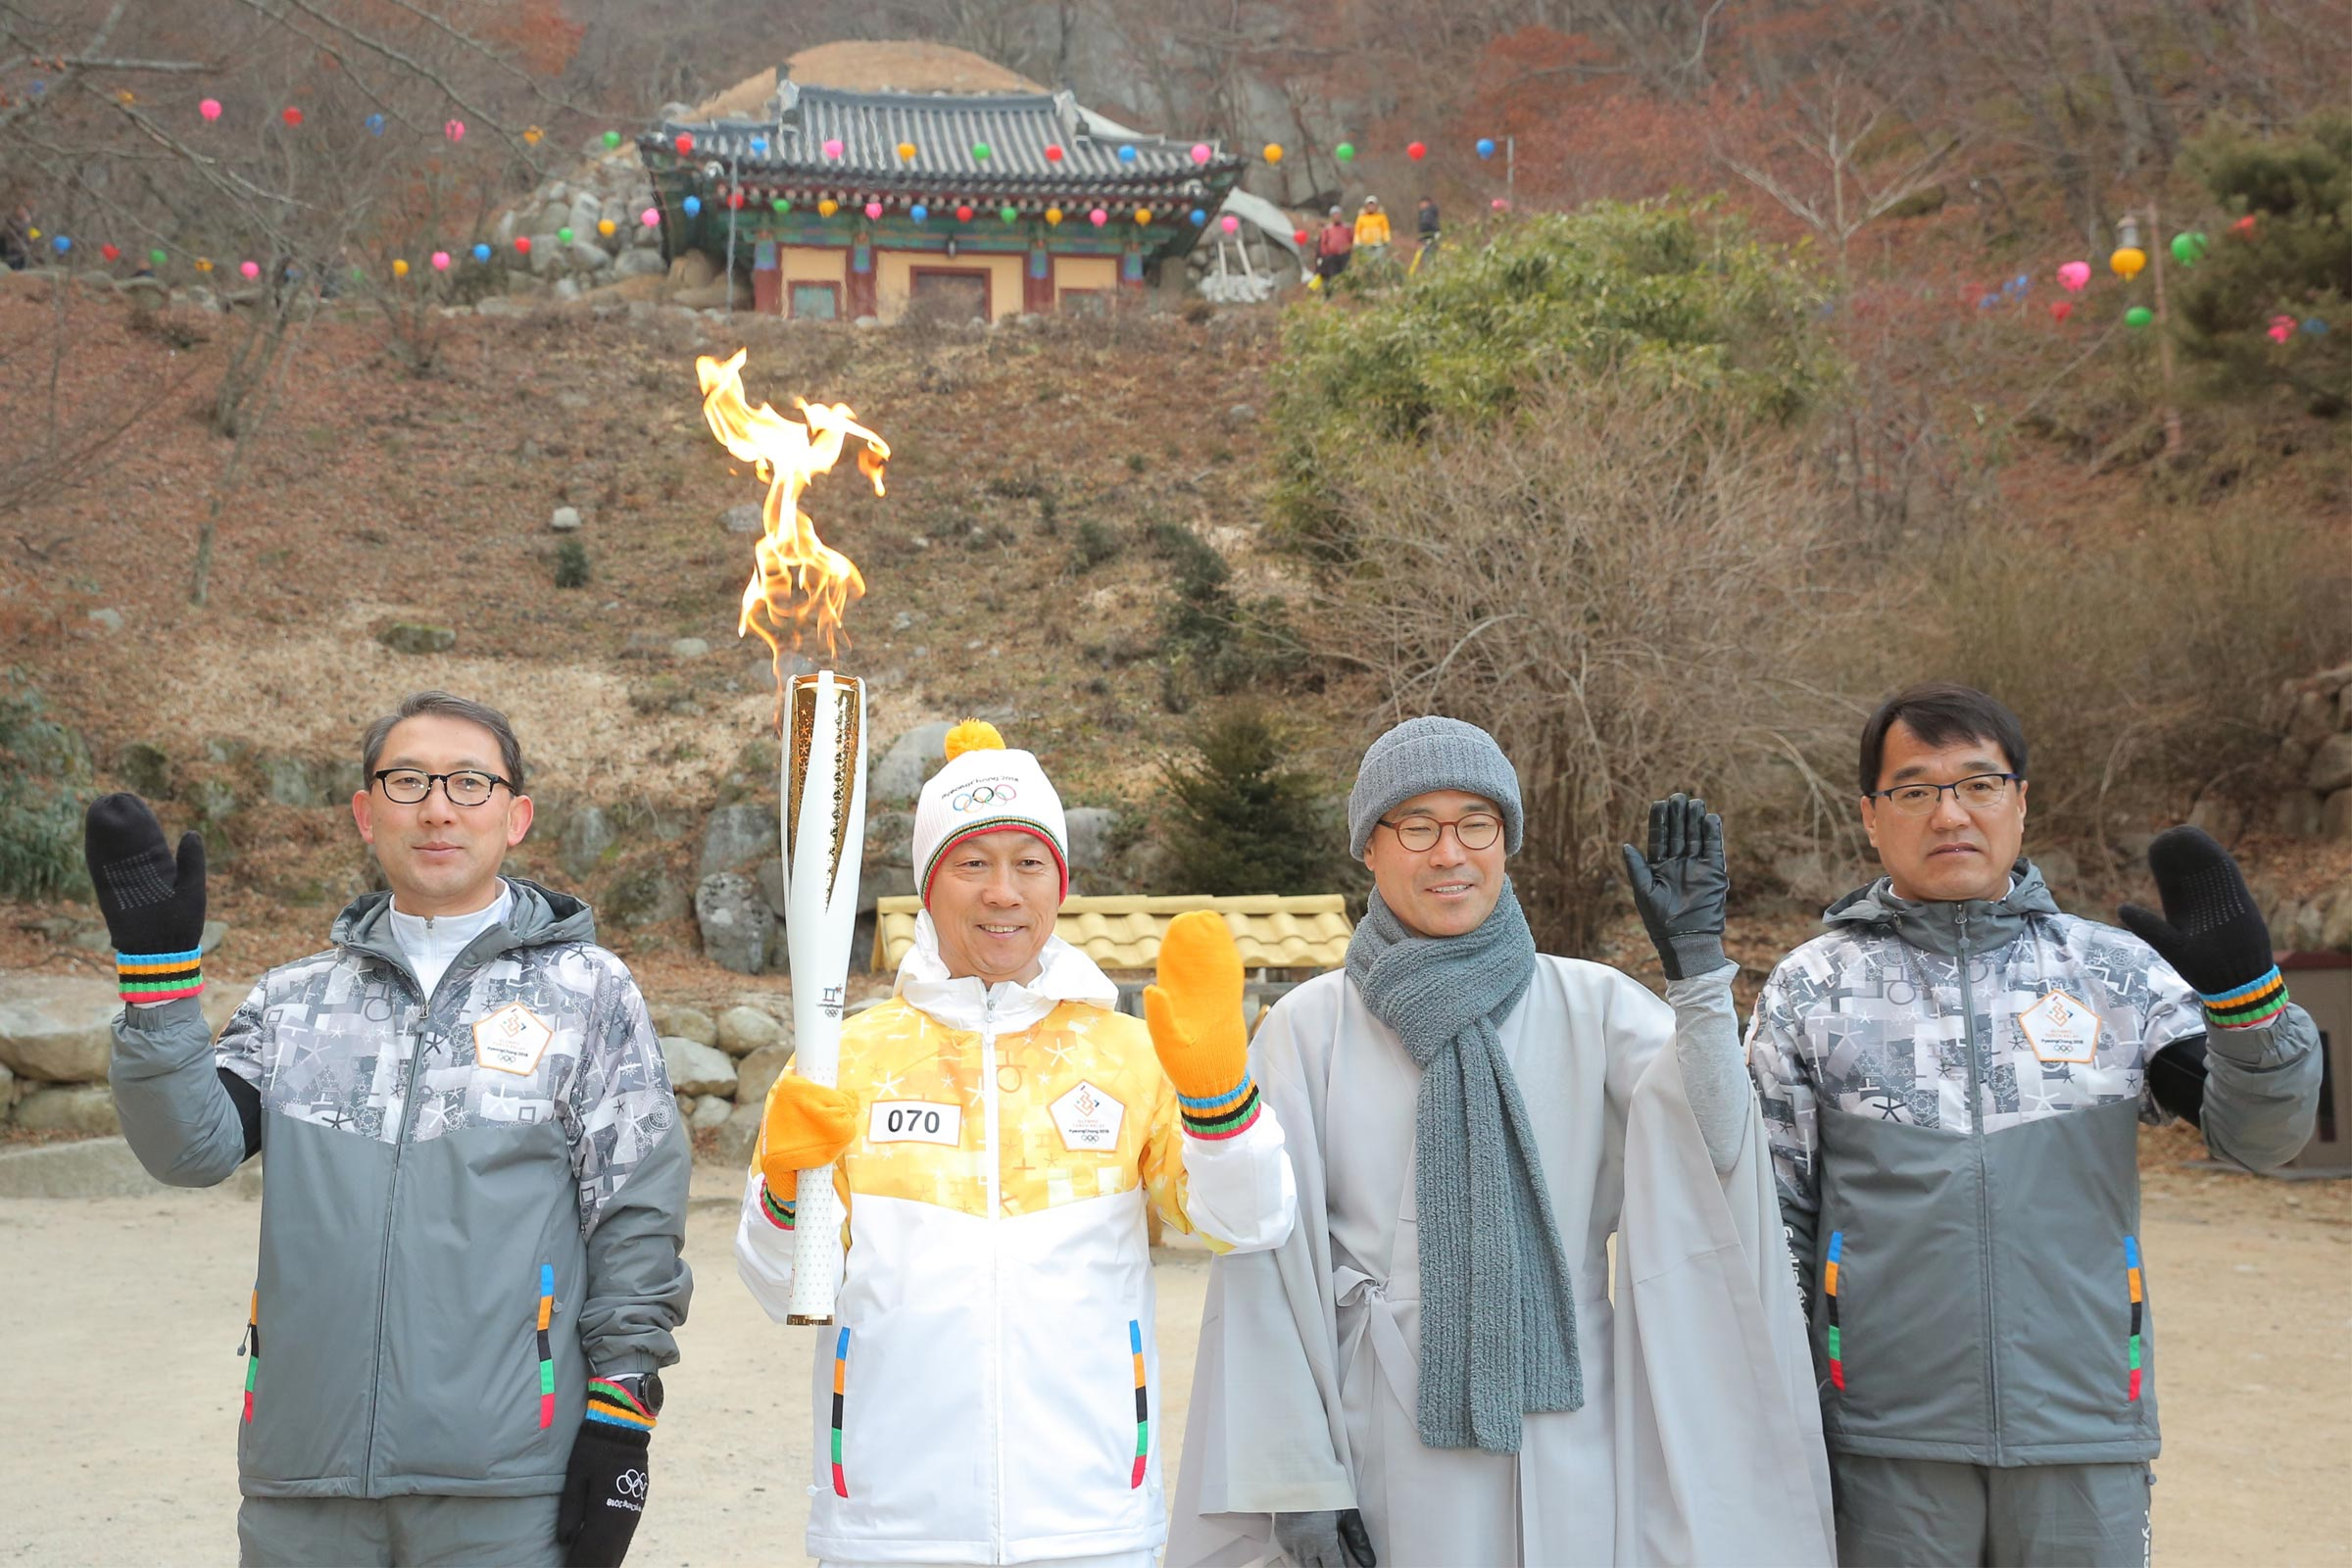 PyeongChang 2018 Olympic Torch Relay - Day 63